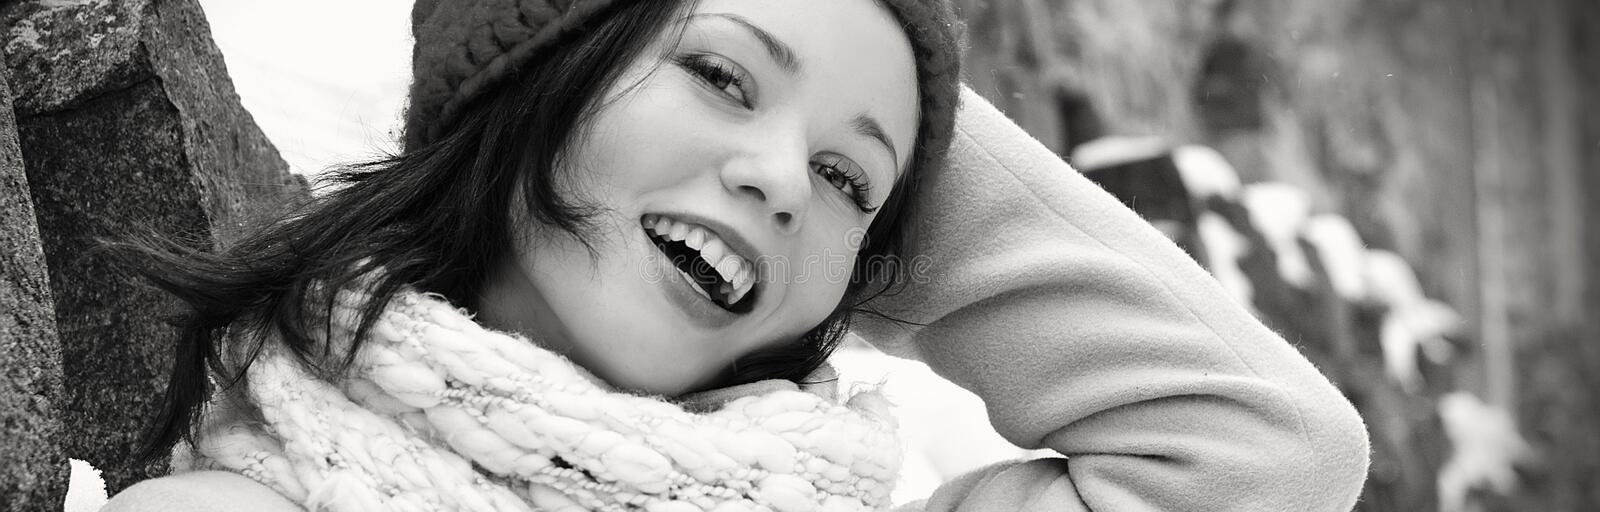 Beautiful girl posing. Smiling outdoors in winter, monochrome banner royalty free stock photos